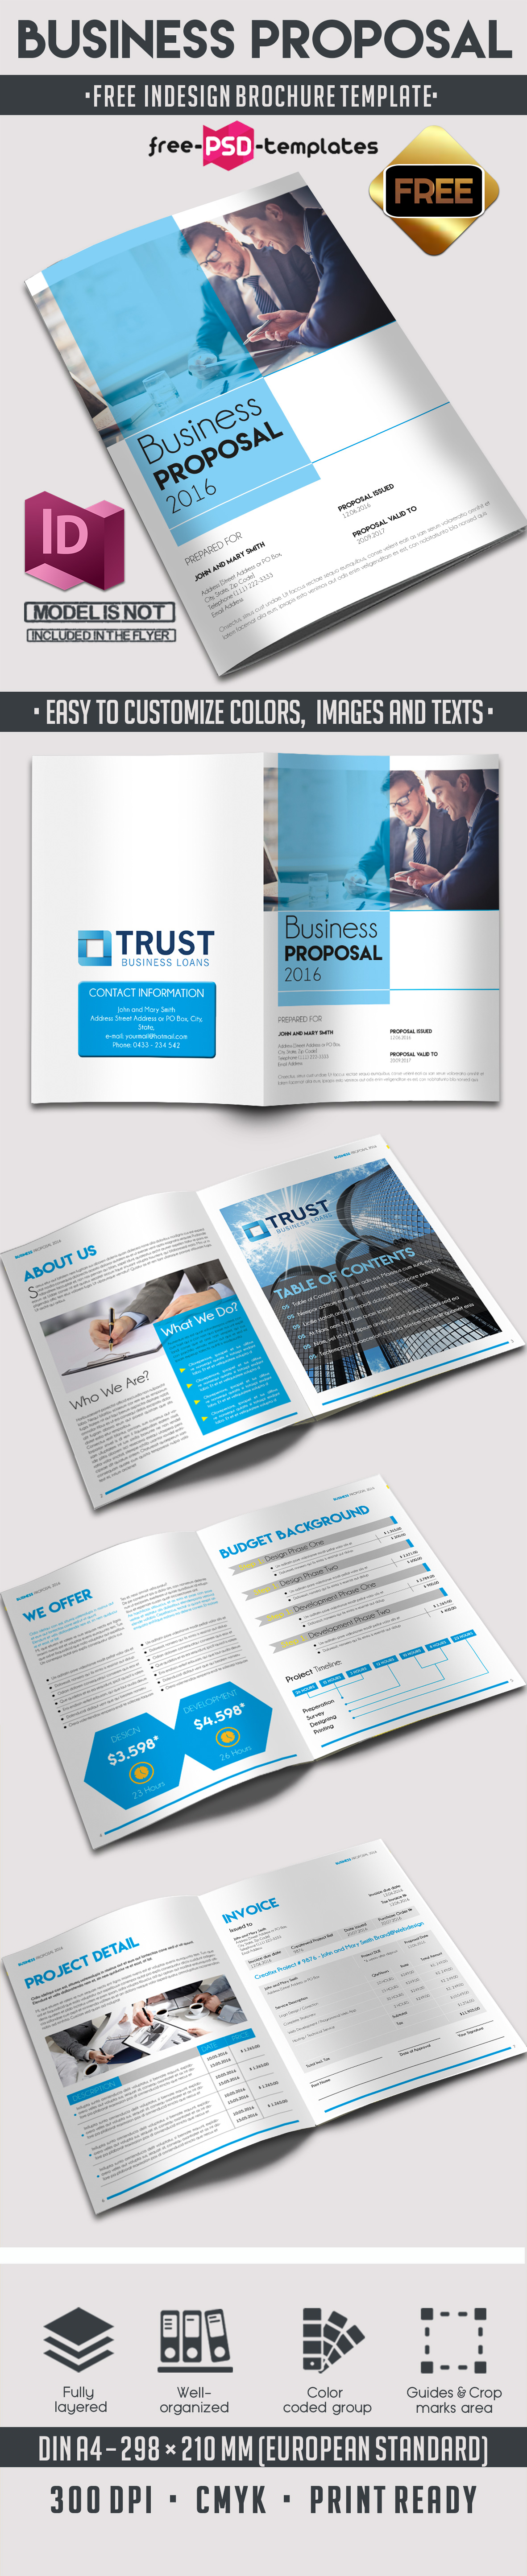 Free business proposal brochure 8 pages a4 free psd for Free business brochures templates